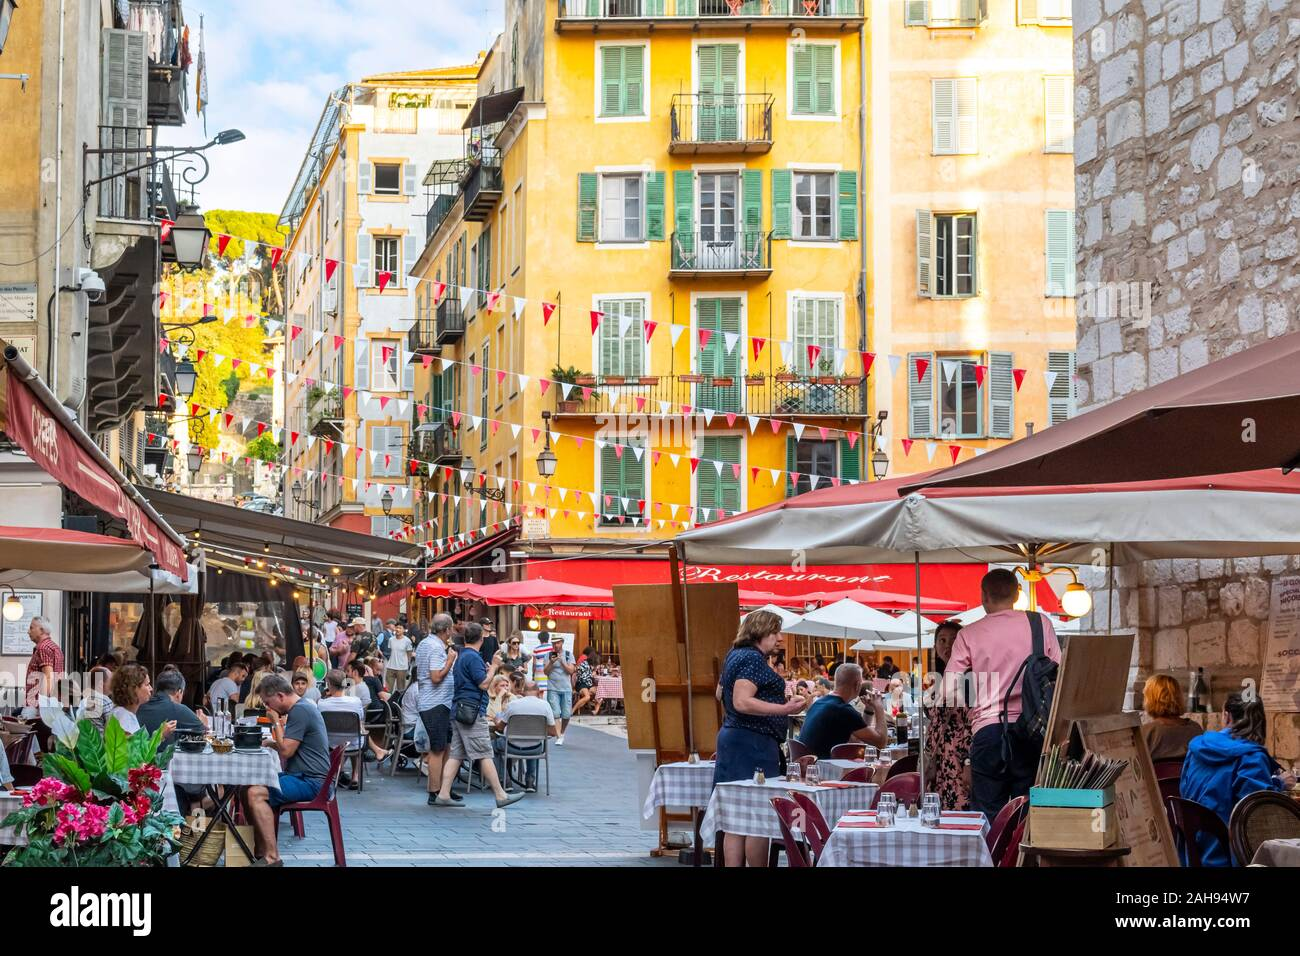 A busy later afternoon at the colorfully decorated Place Rossetti as tourists crowd the shops and cafes in the Old Town area. Stock Photo